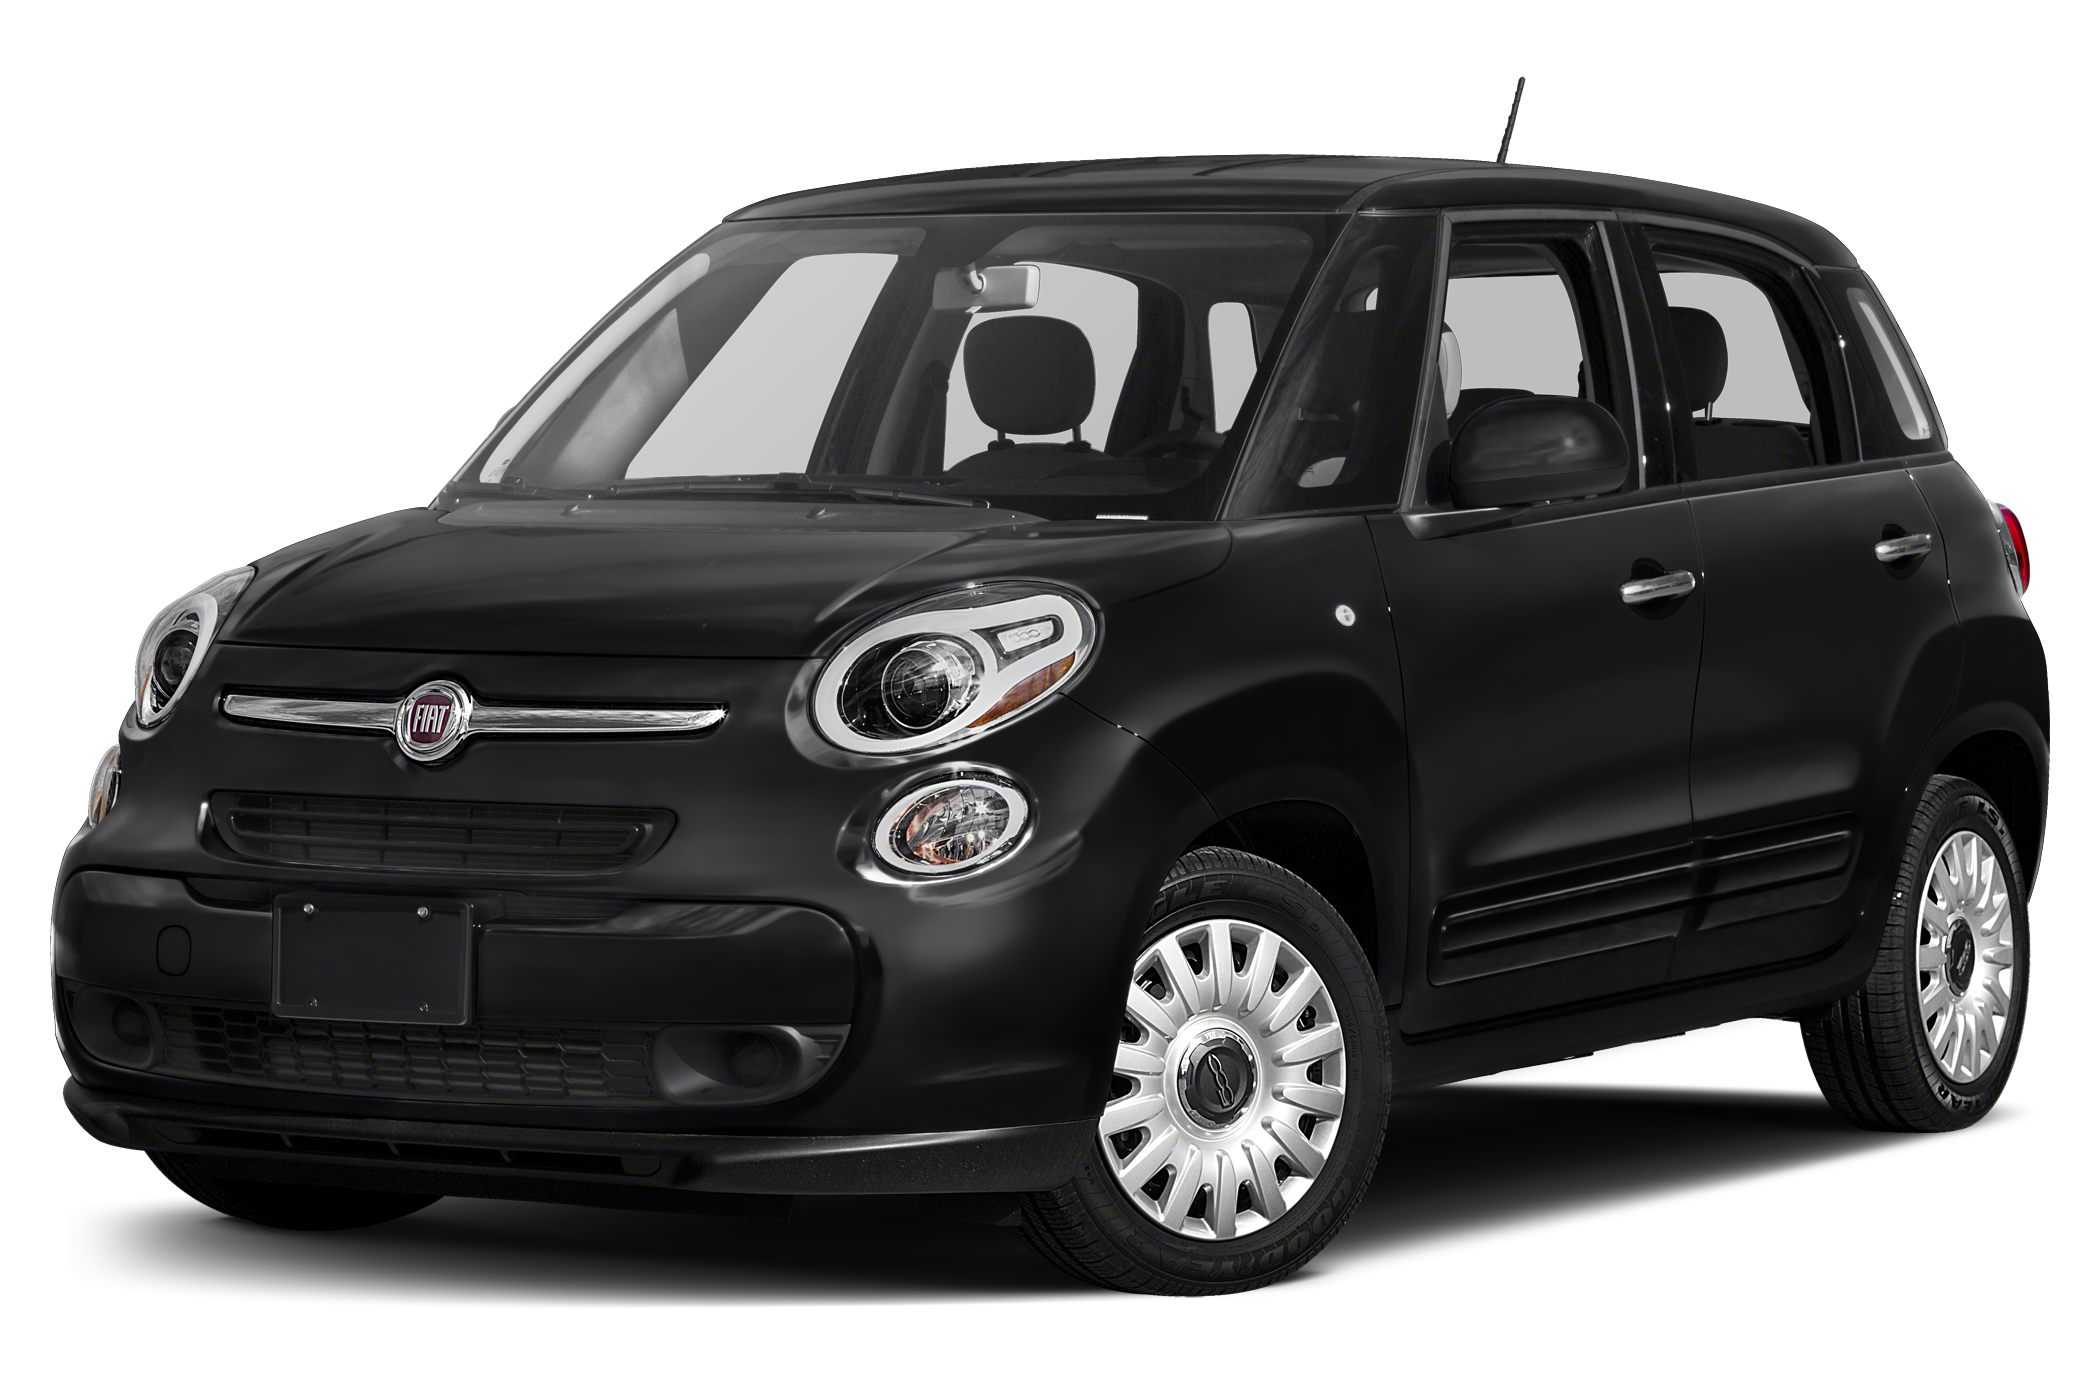 fiat 500 usa engine fiat free engine image for user manual download. Black Bedroom Furniture Sets. Home Design Ideas